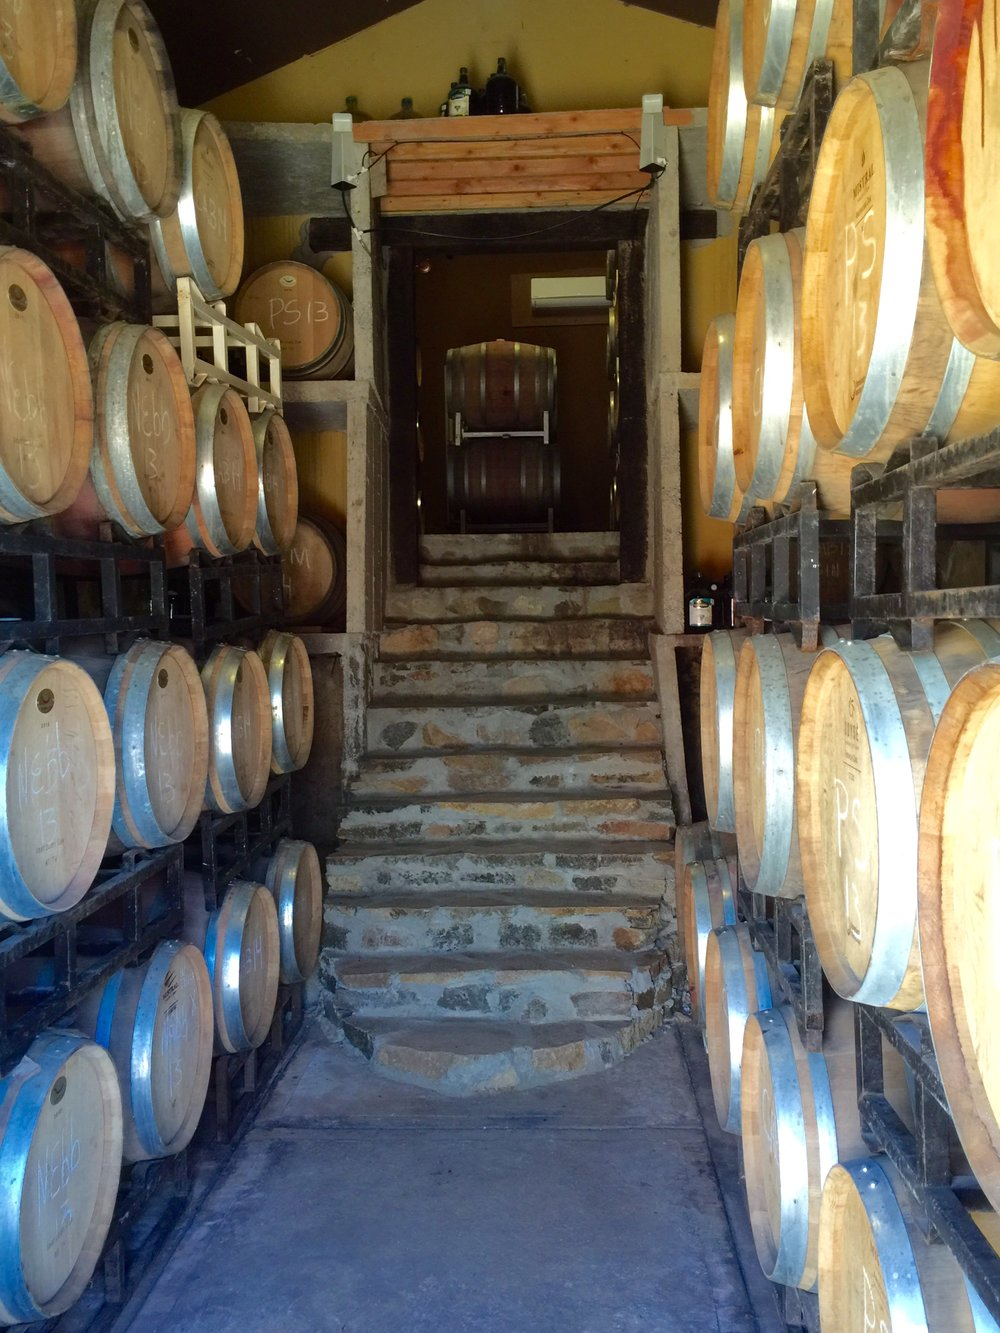 Barrel room at Cava Macial.